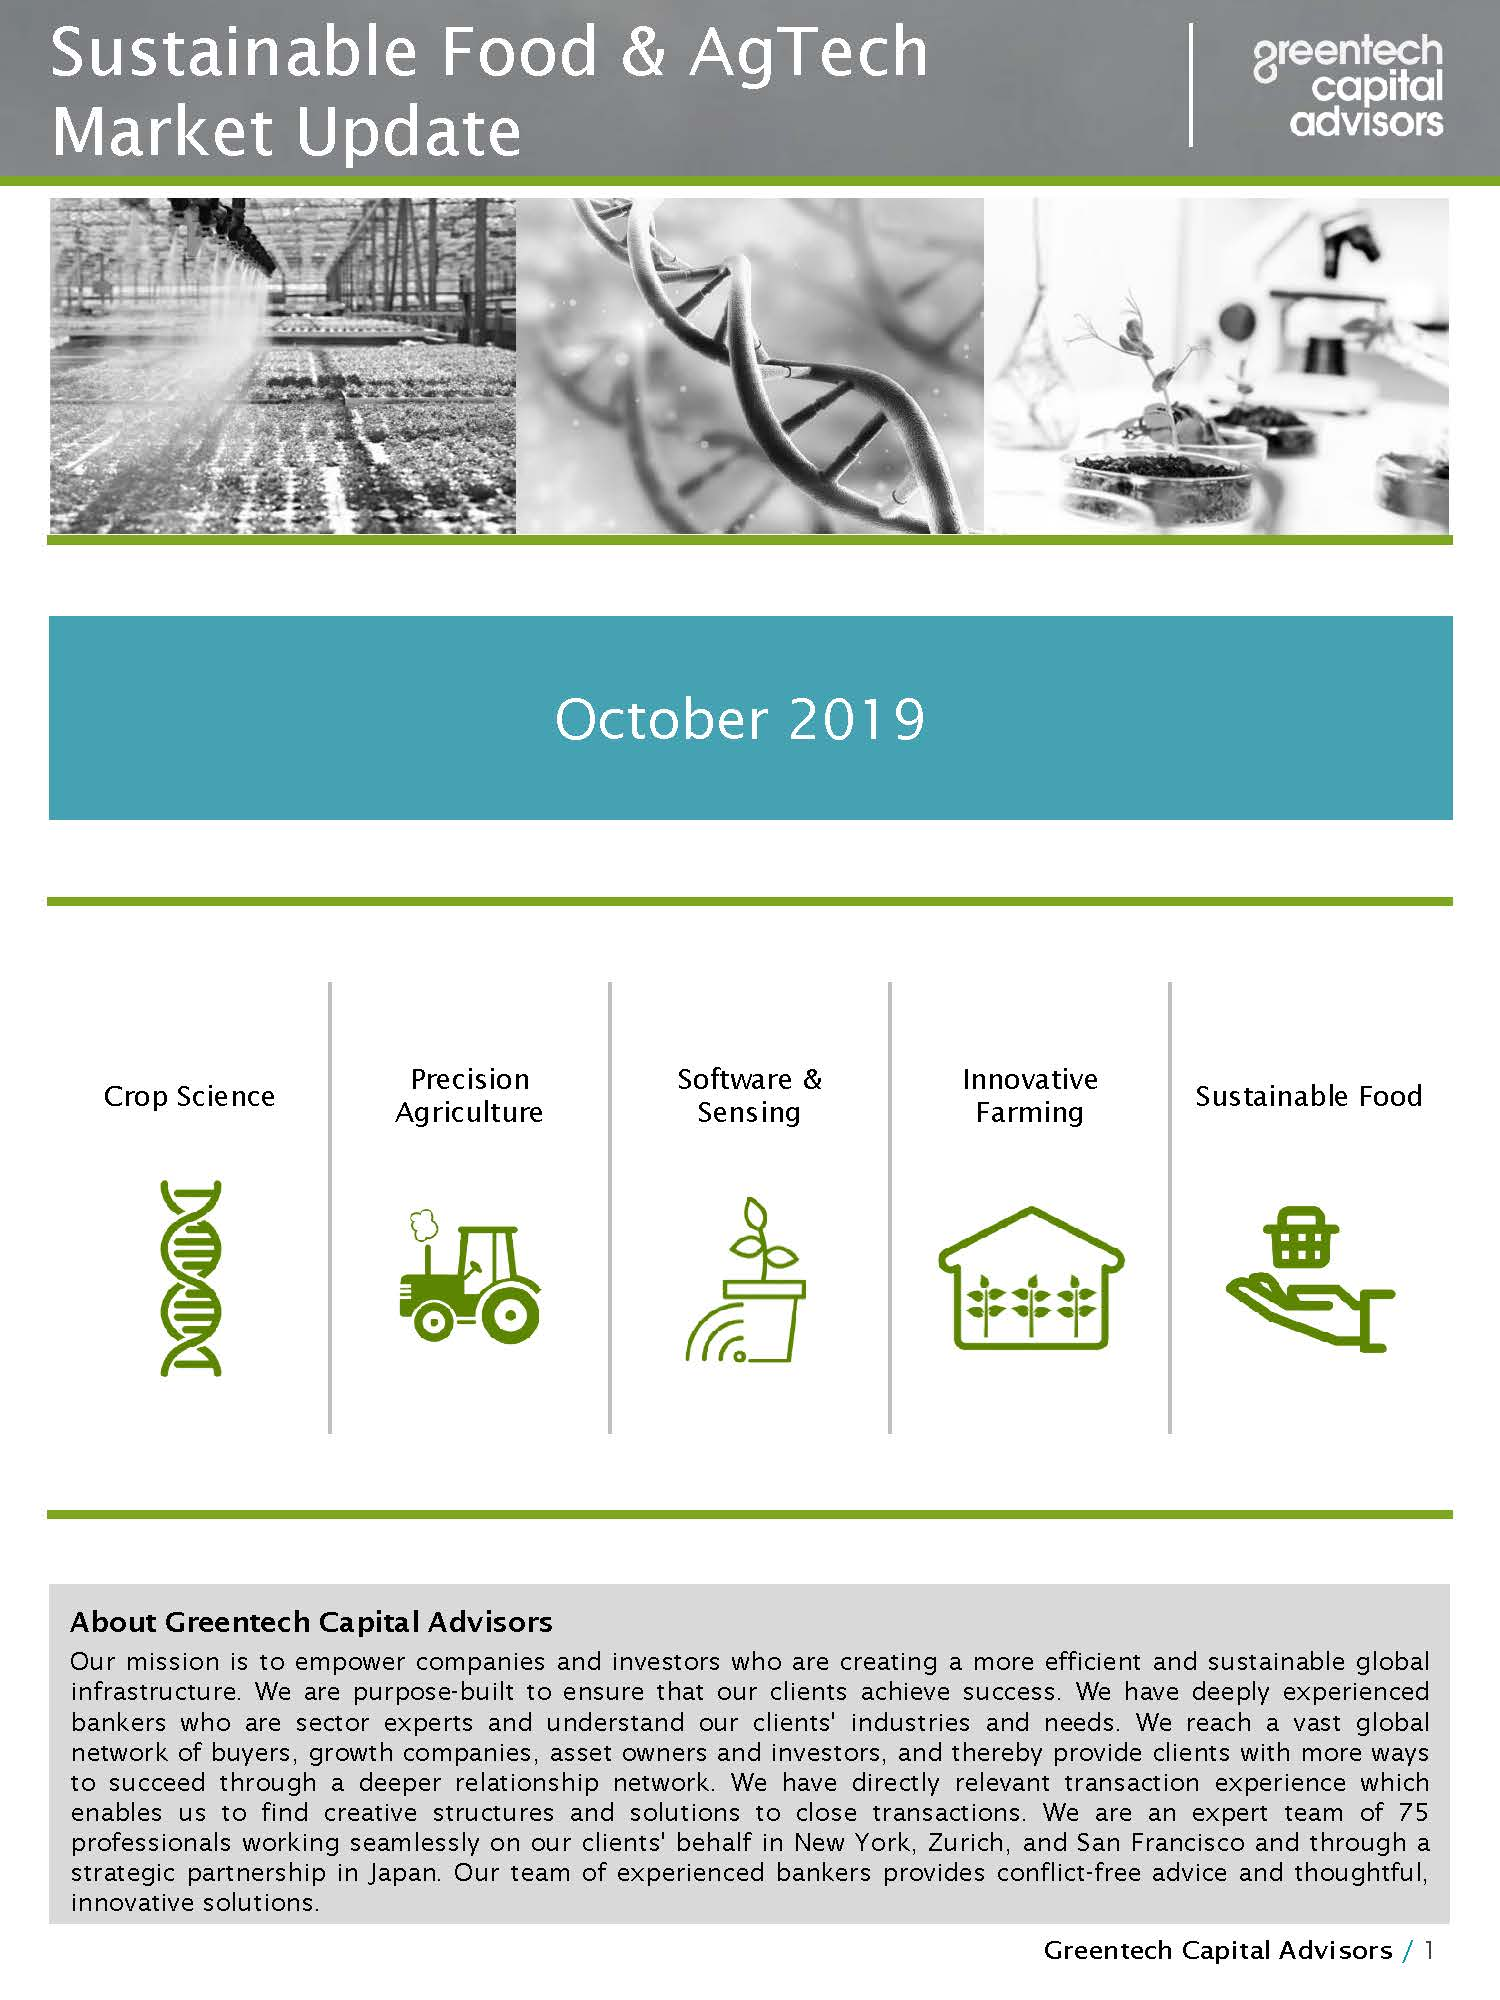 Sustainable Food & AgTech Market Update Newsletter - October 2019